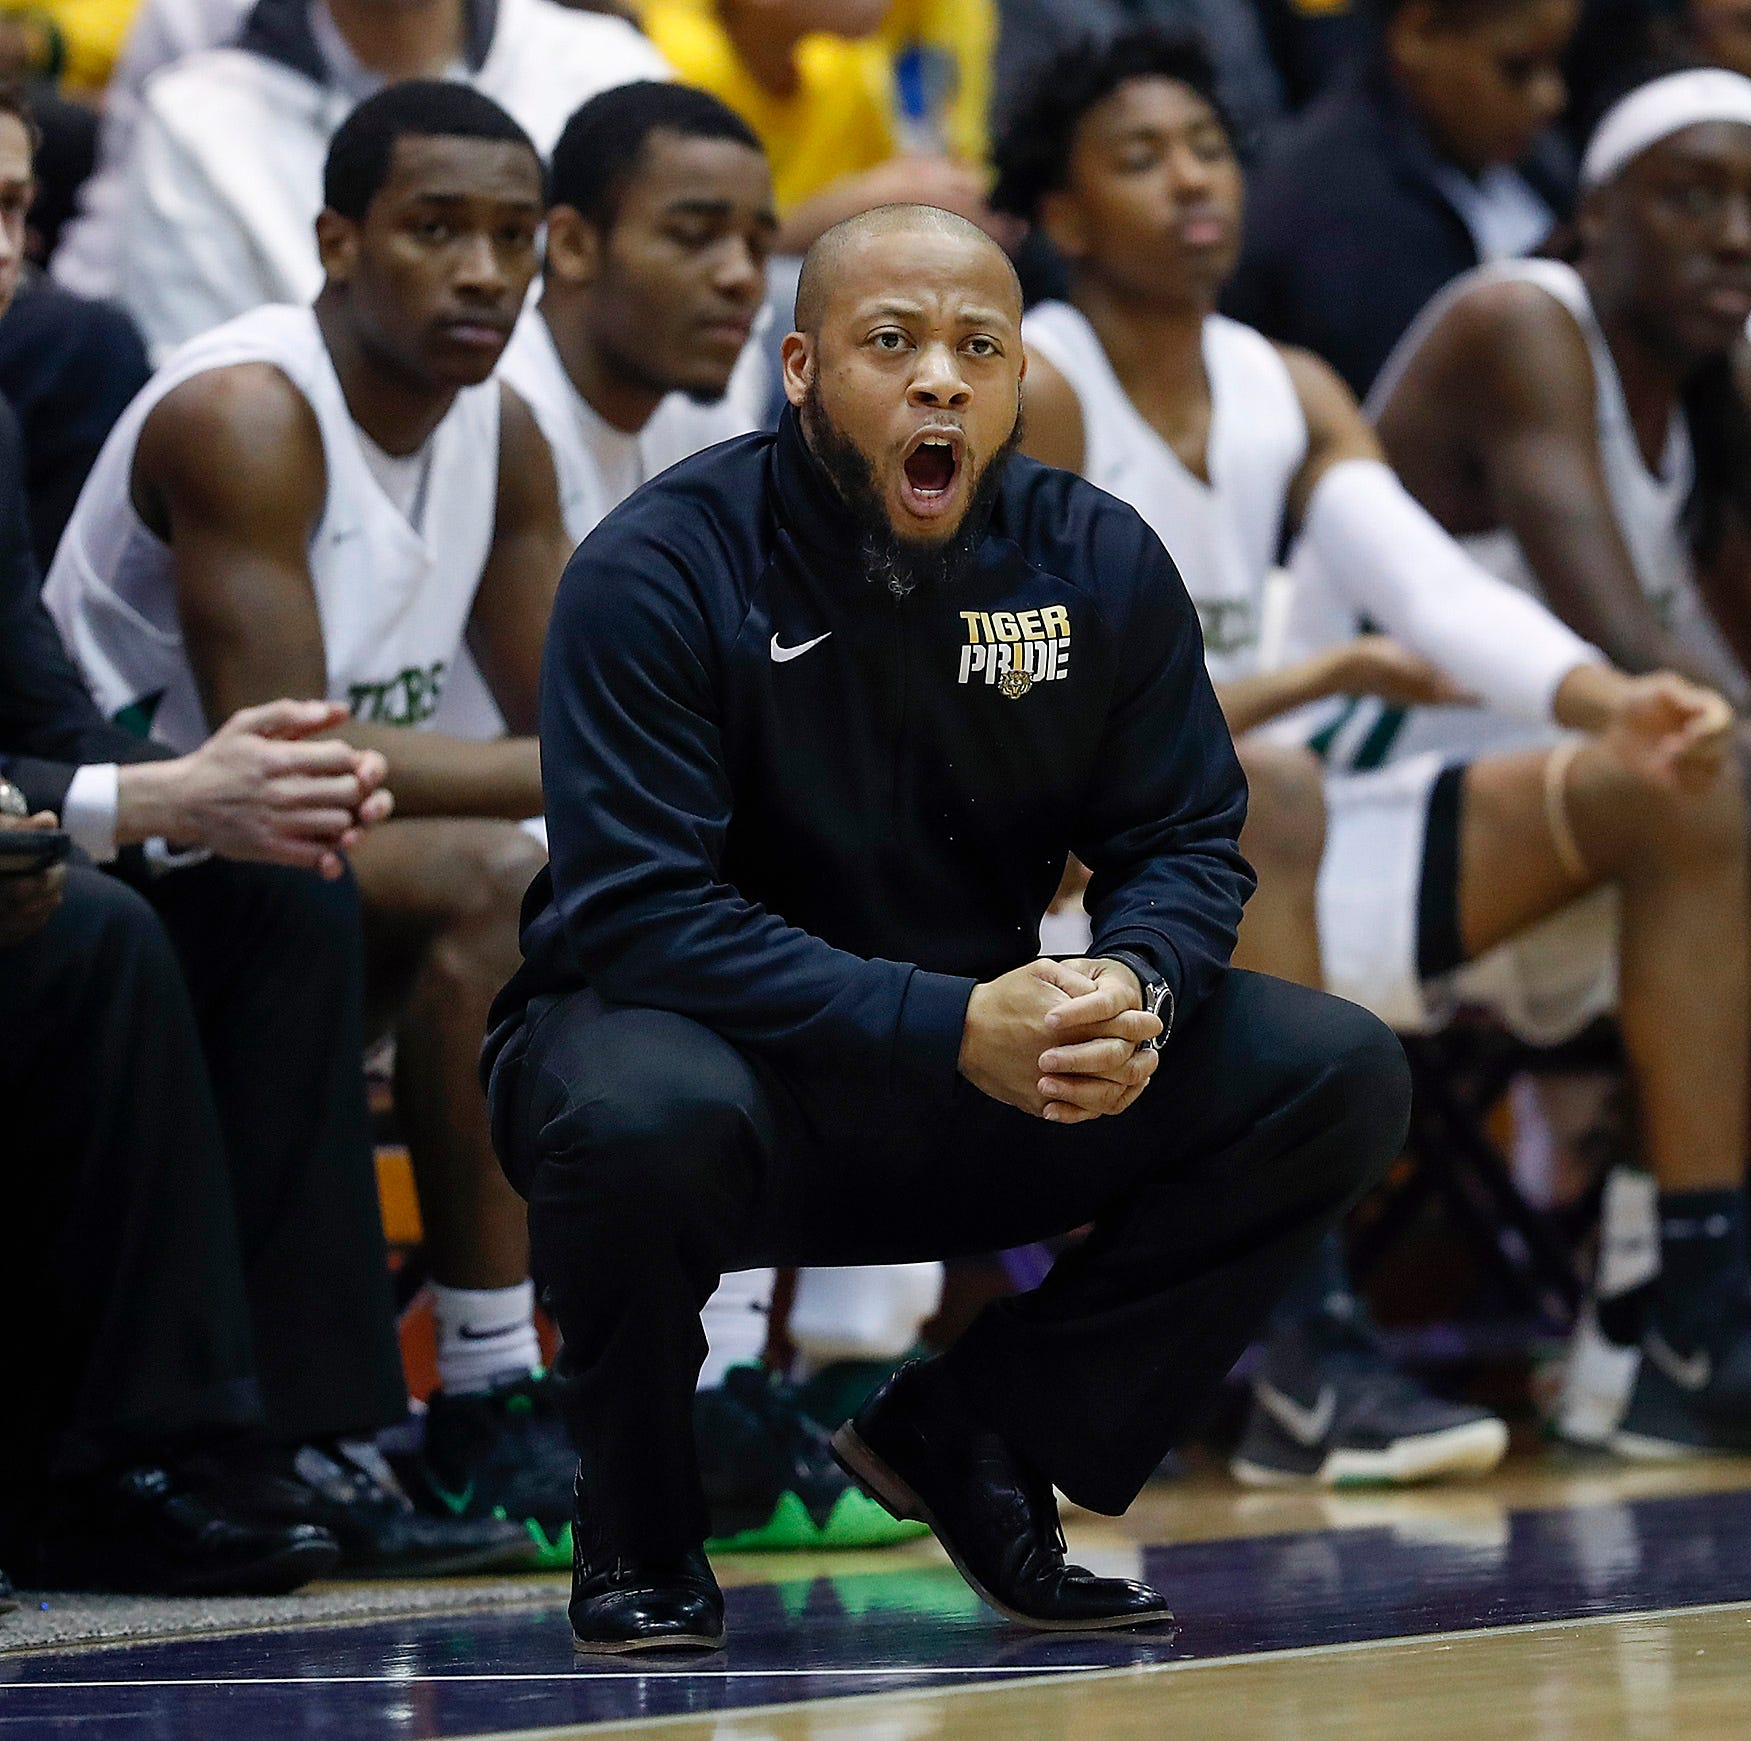 Attucks' coach: 'We don't condone that type of behavior' after punch thrown in loss